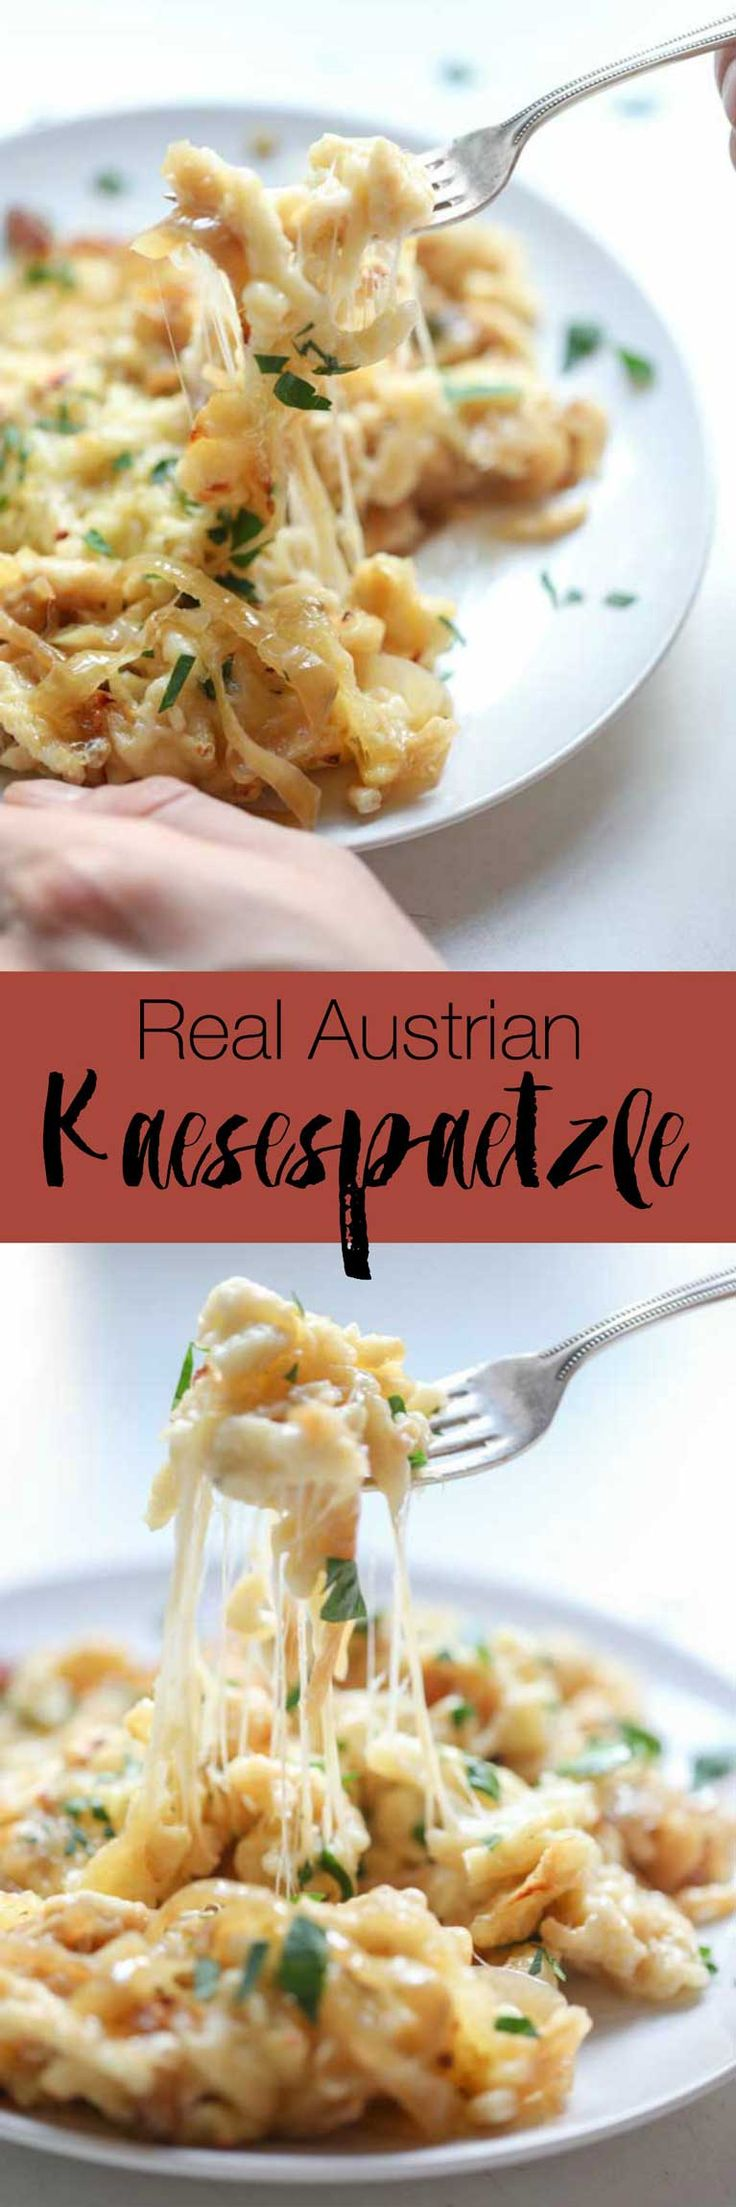 Cheeselovers beware!!!! This Austrian Kaesespaetzle recipe gives you a cheese overdose!